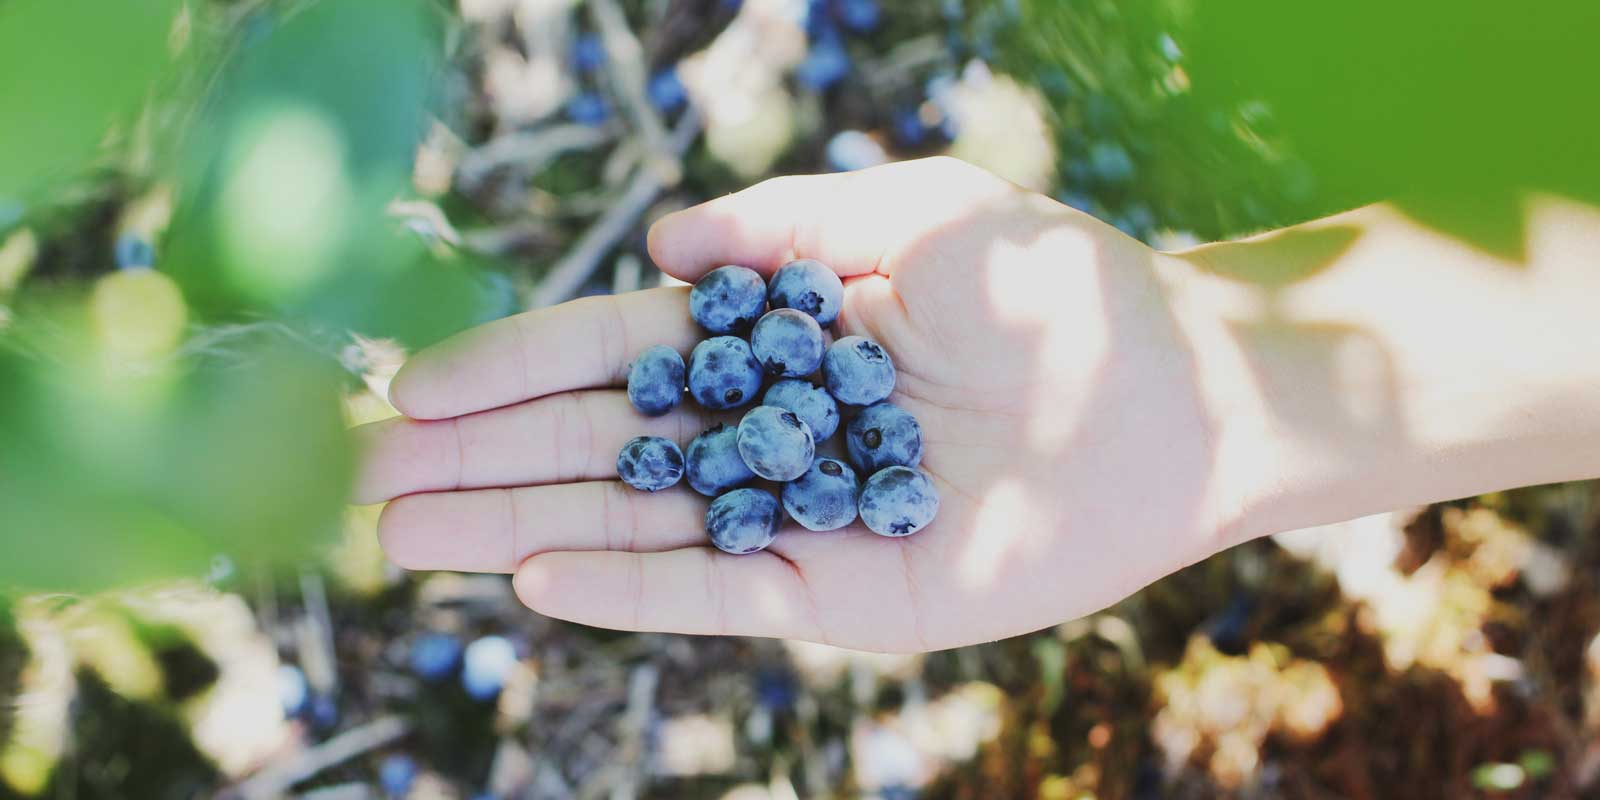 Close up of a person holding a handful of blueberries